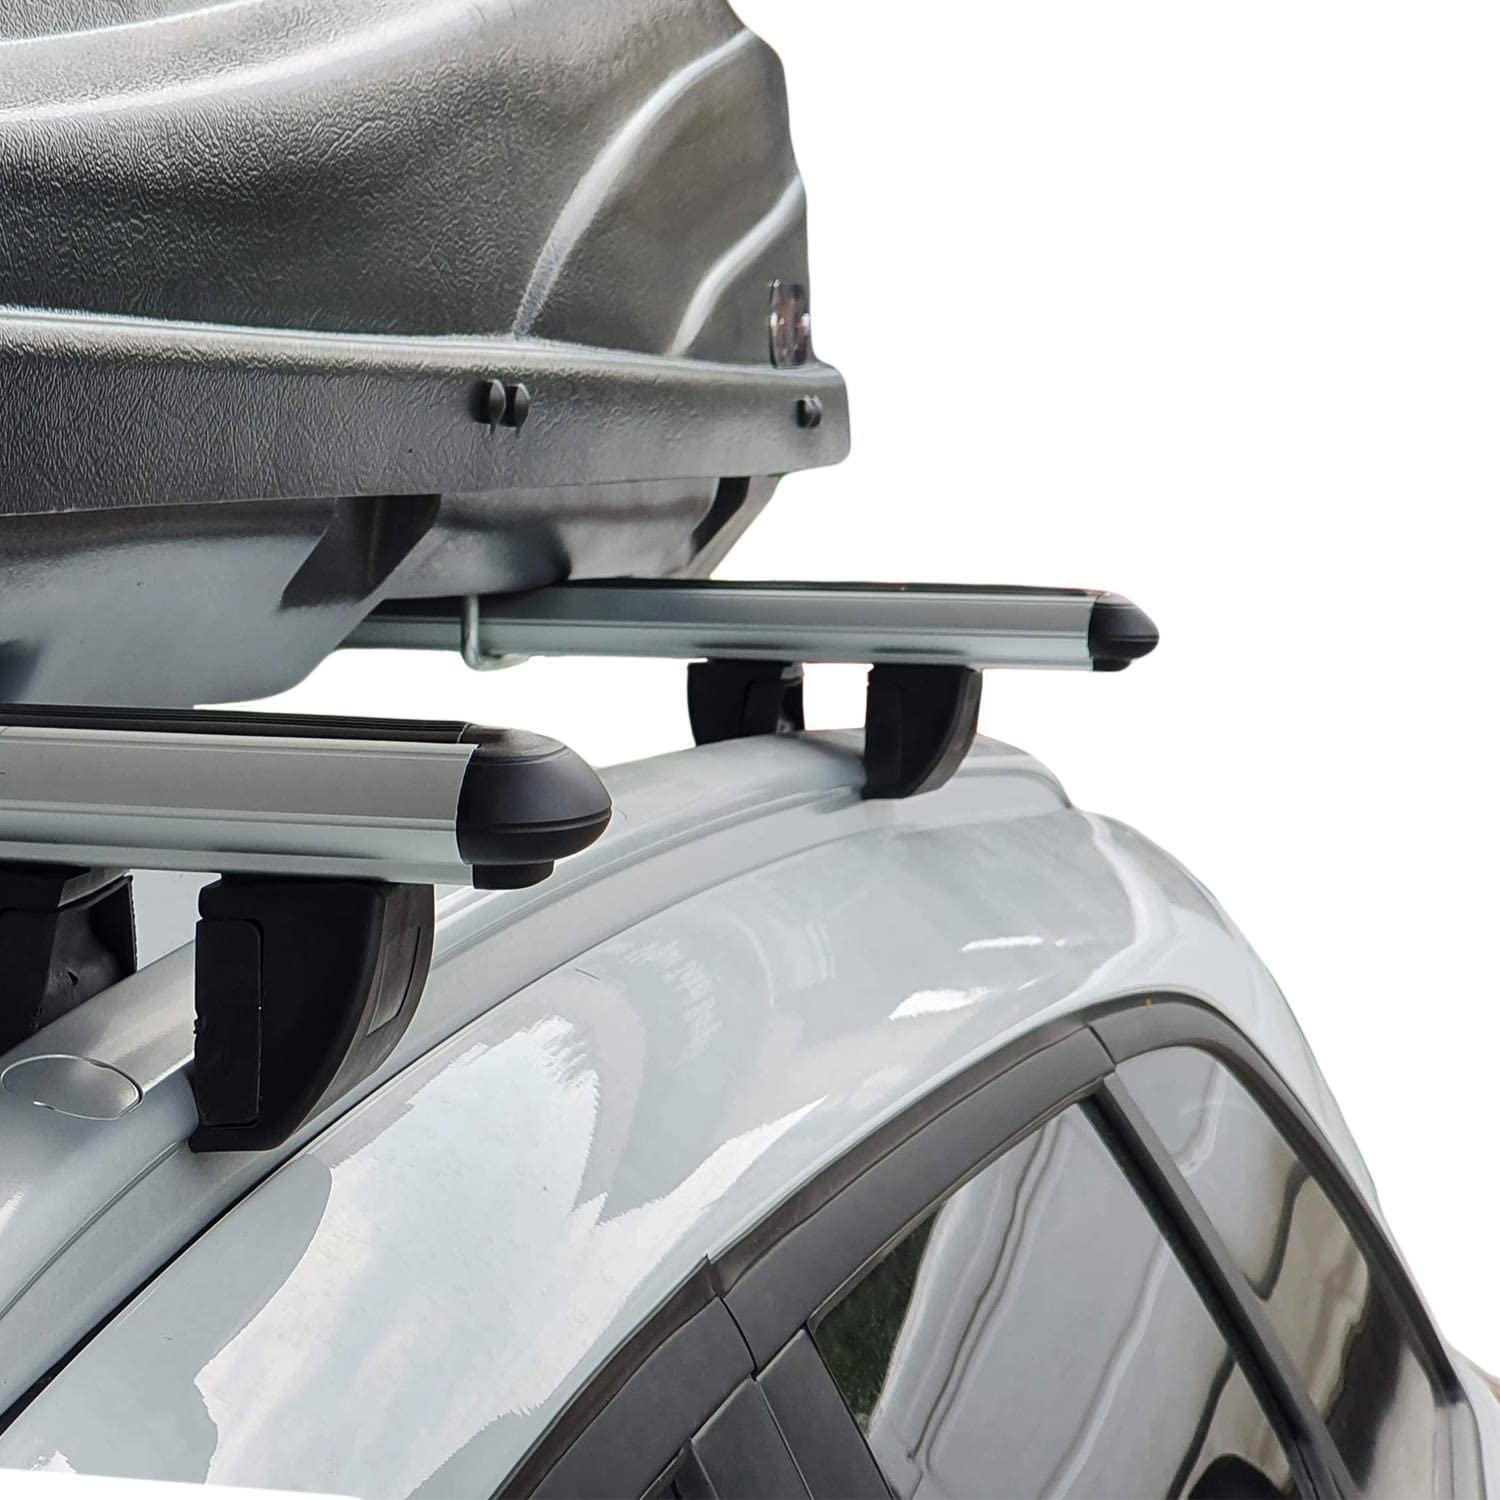 REAR low-pricing Tuning Cross Bar for 2008-2 New products, world's highest quality popular! Berlingo Multispace 5D Citroen